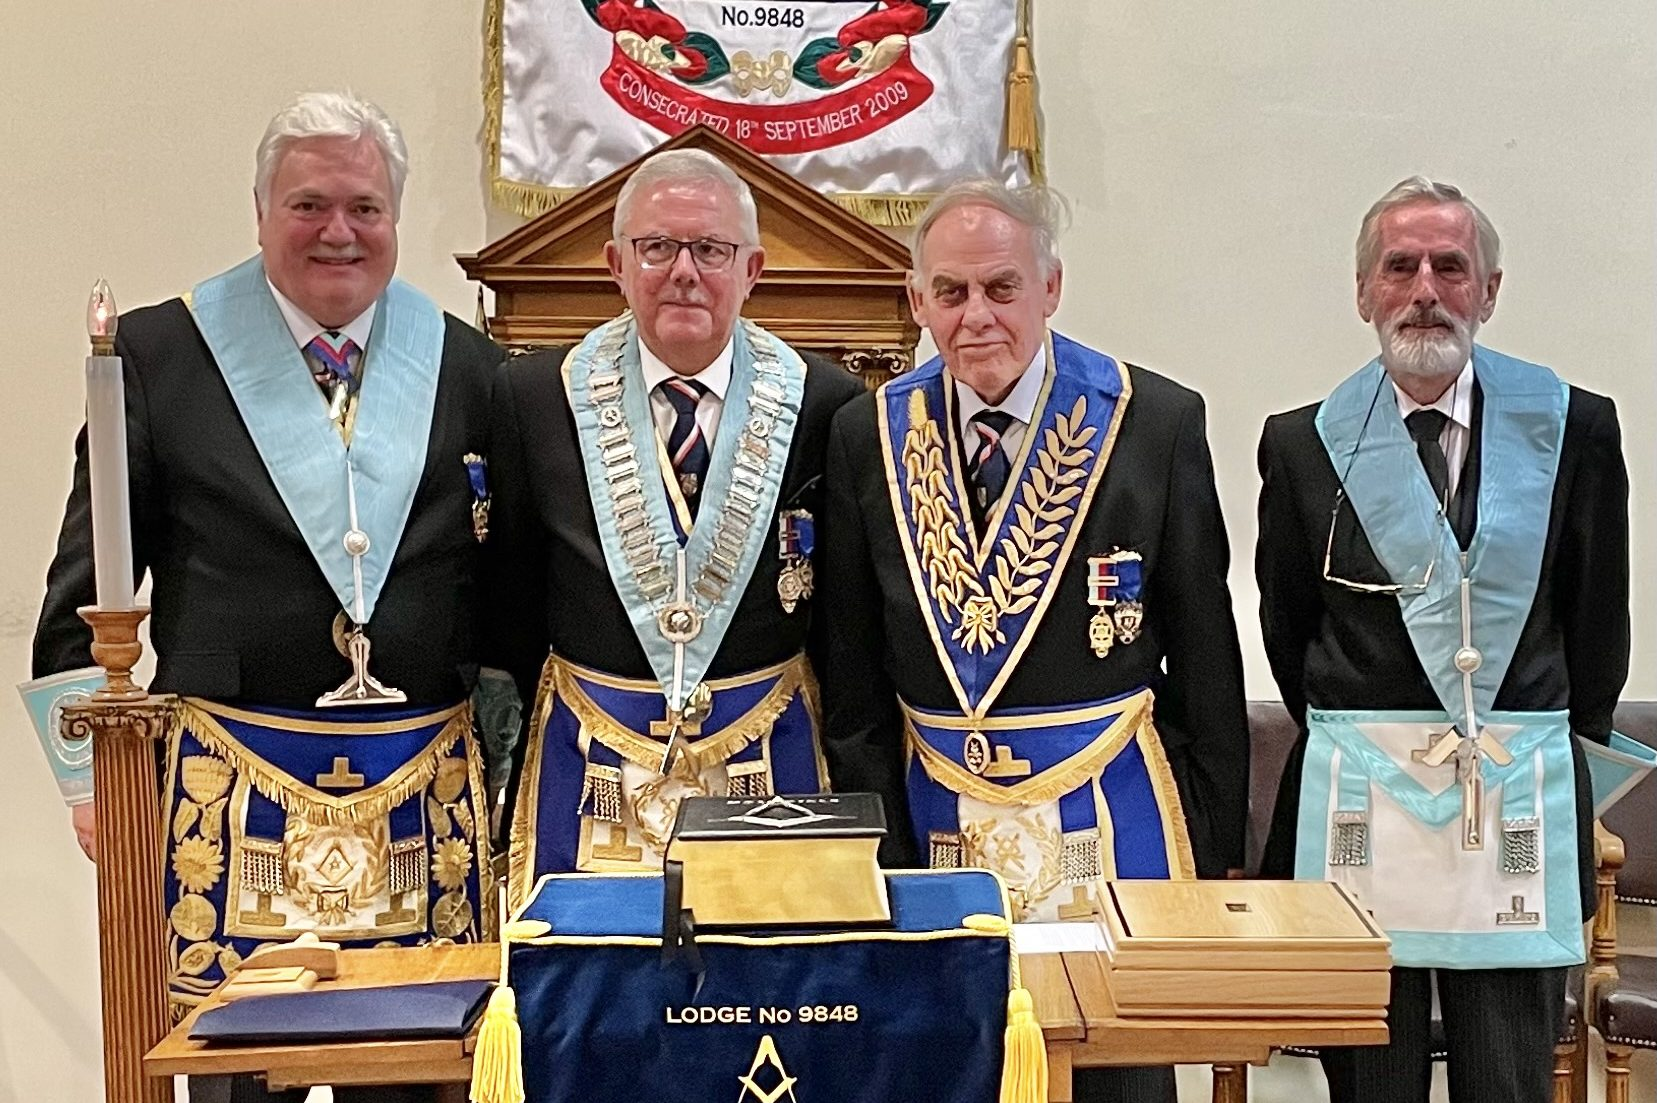 PGM Invested as Senior Warden of the Michael Sawyer Lodge of Reunion